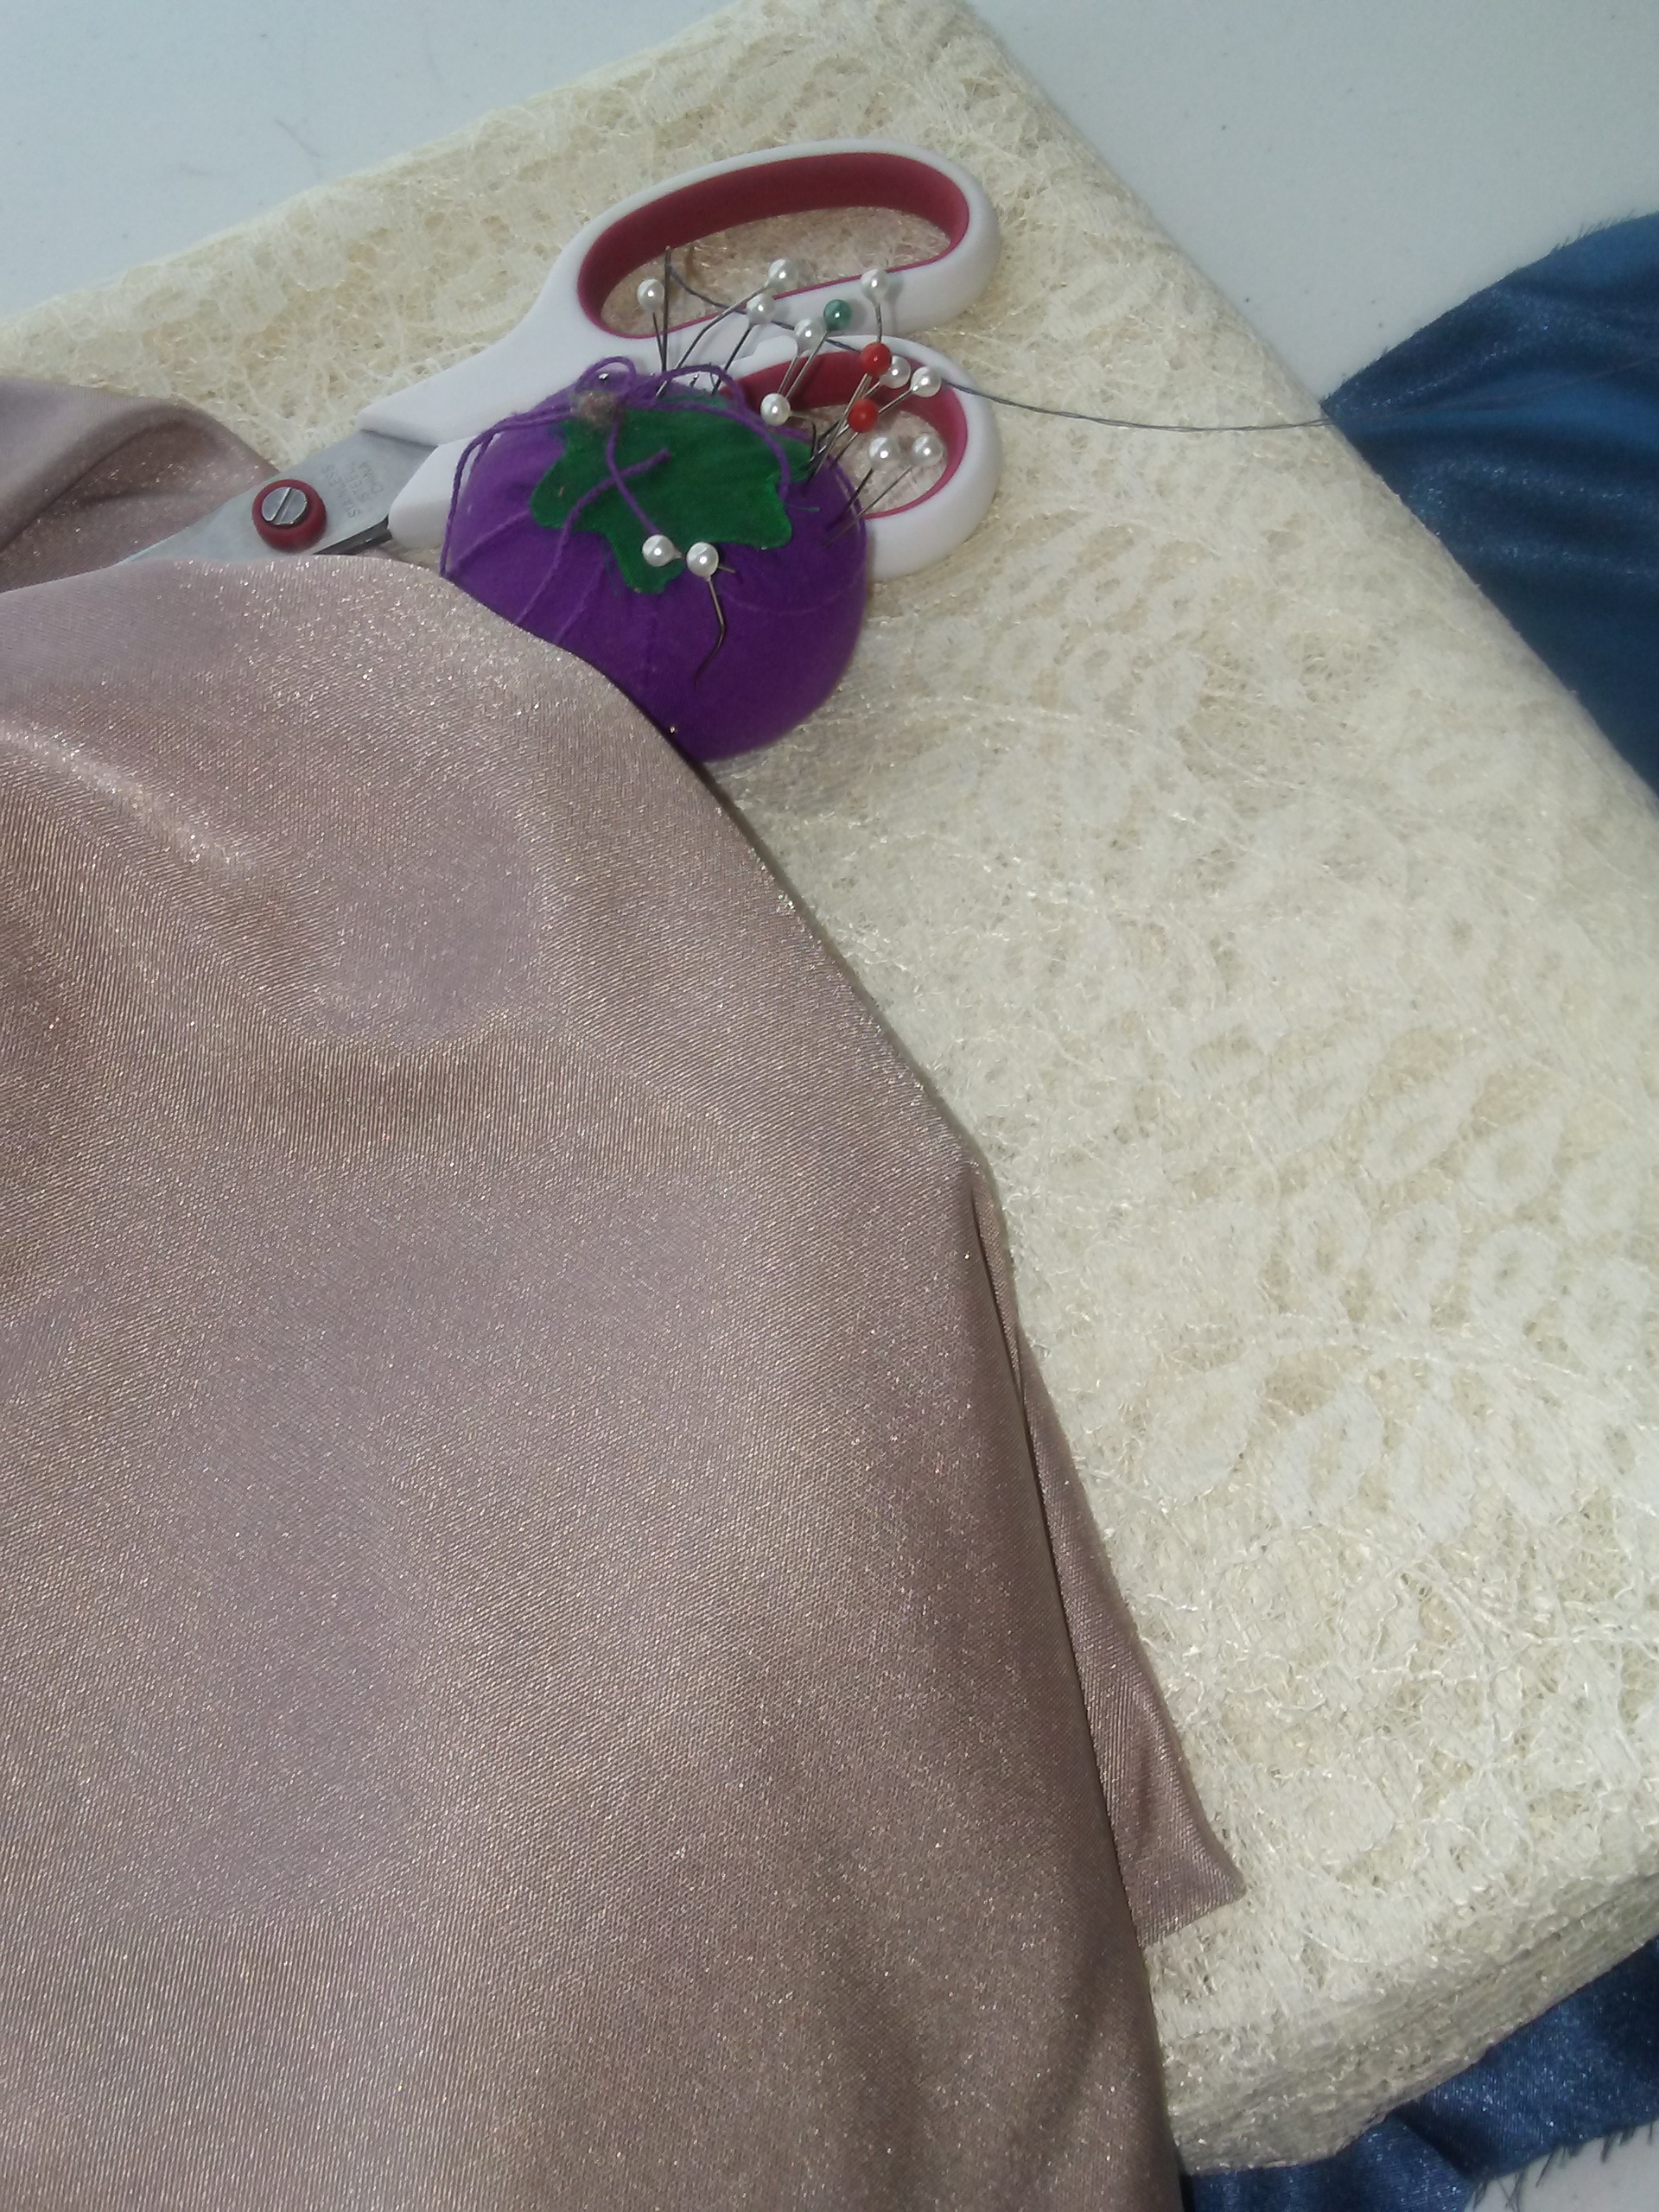 photo of purple fabric and a white lace fabric with a pair of scissors and a pin cushion.